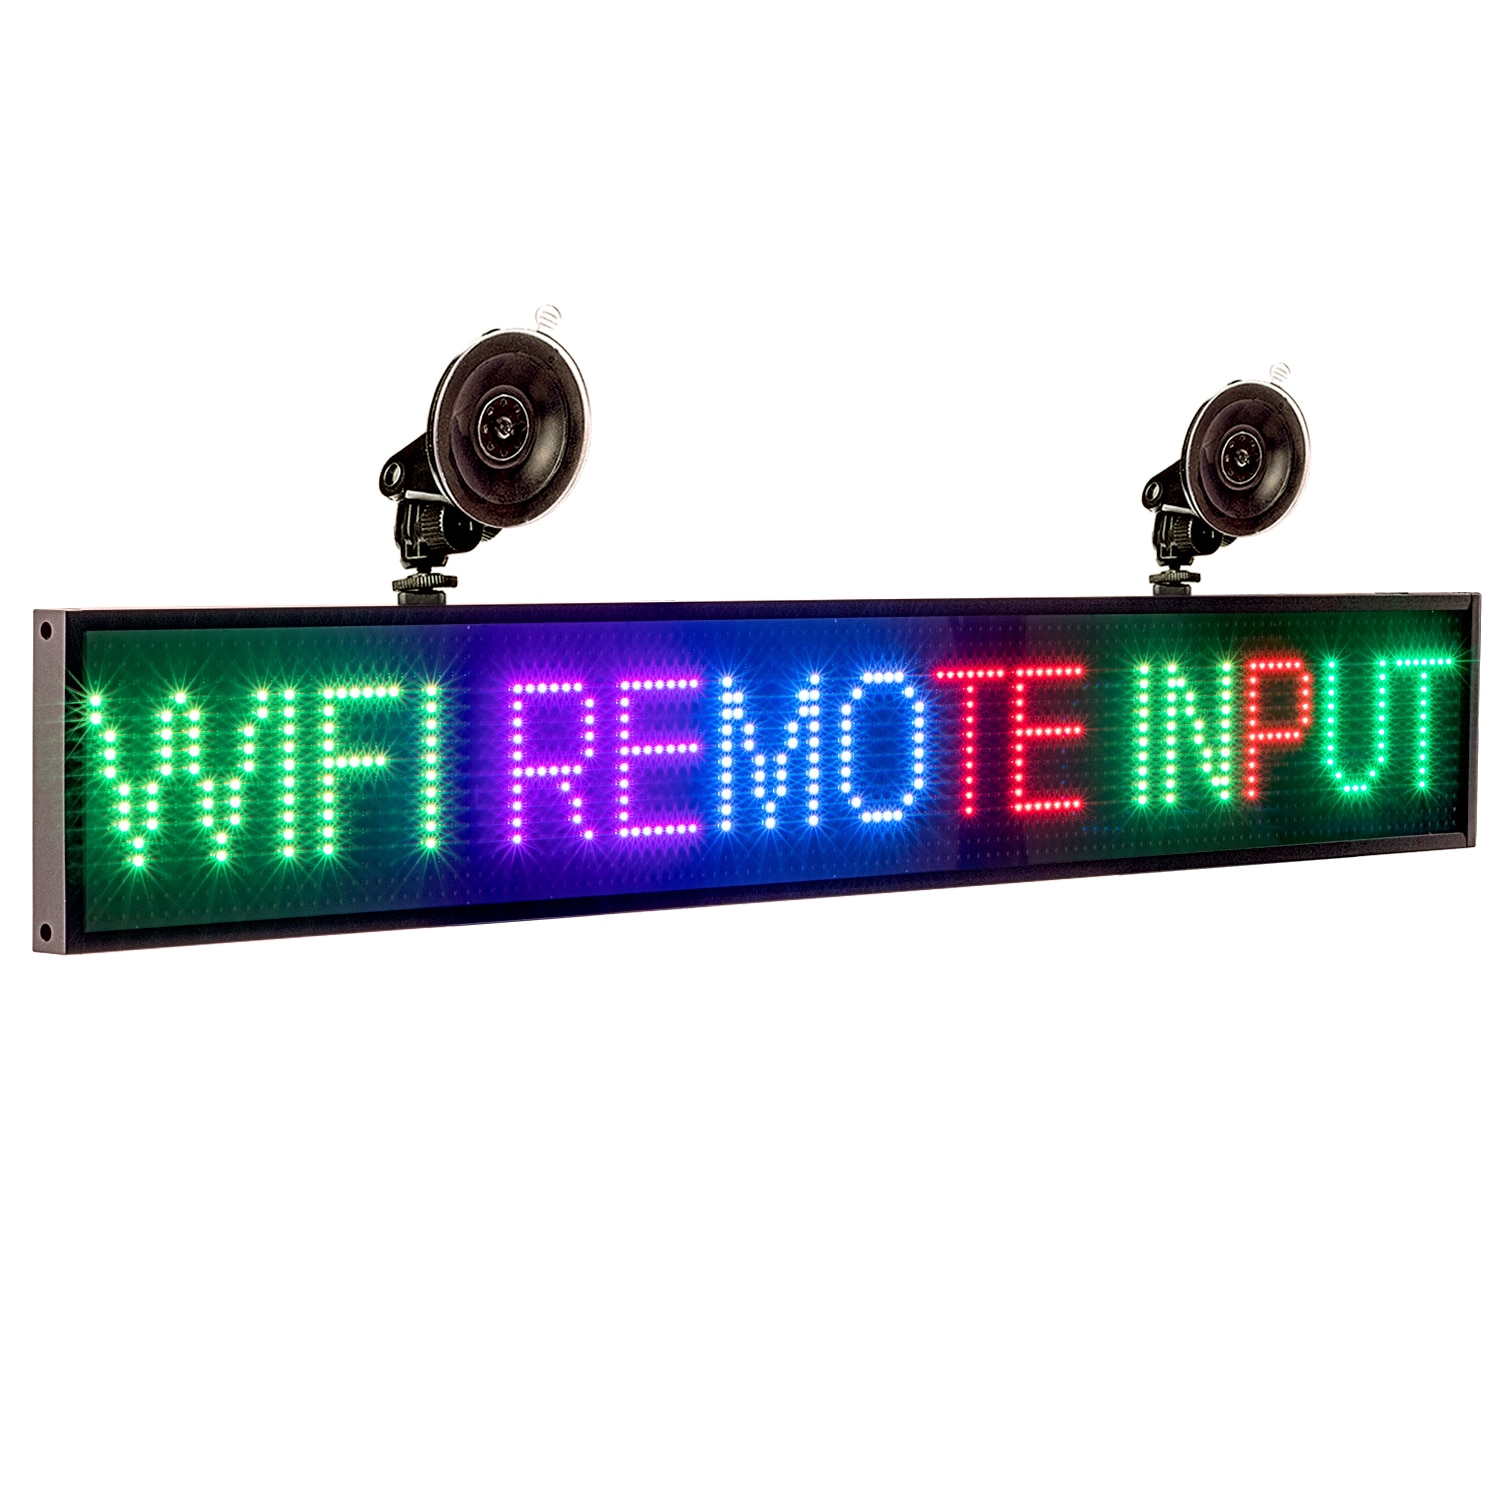 P5 82cm 12V SMD2121 RGB Sign Full Color Car LED Display Board Indoor Programmable Scrolling Text Message Advertising Screen